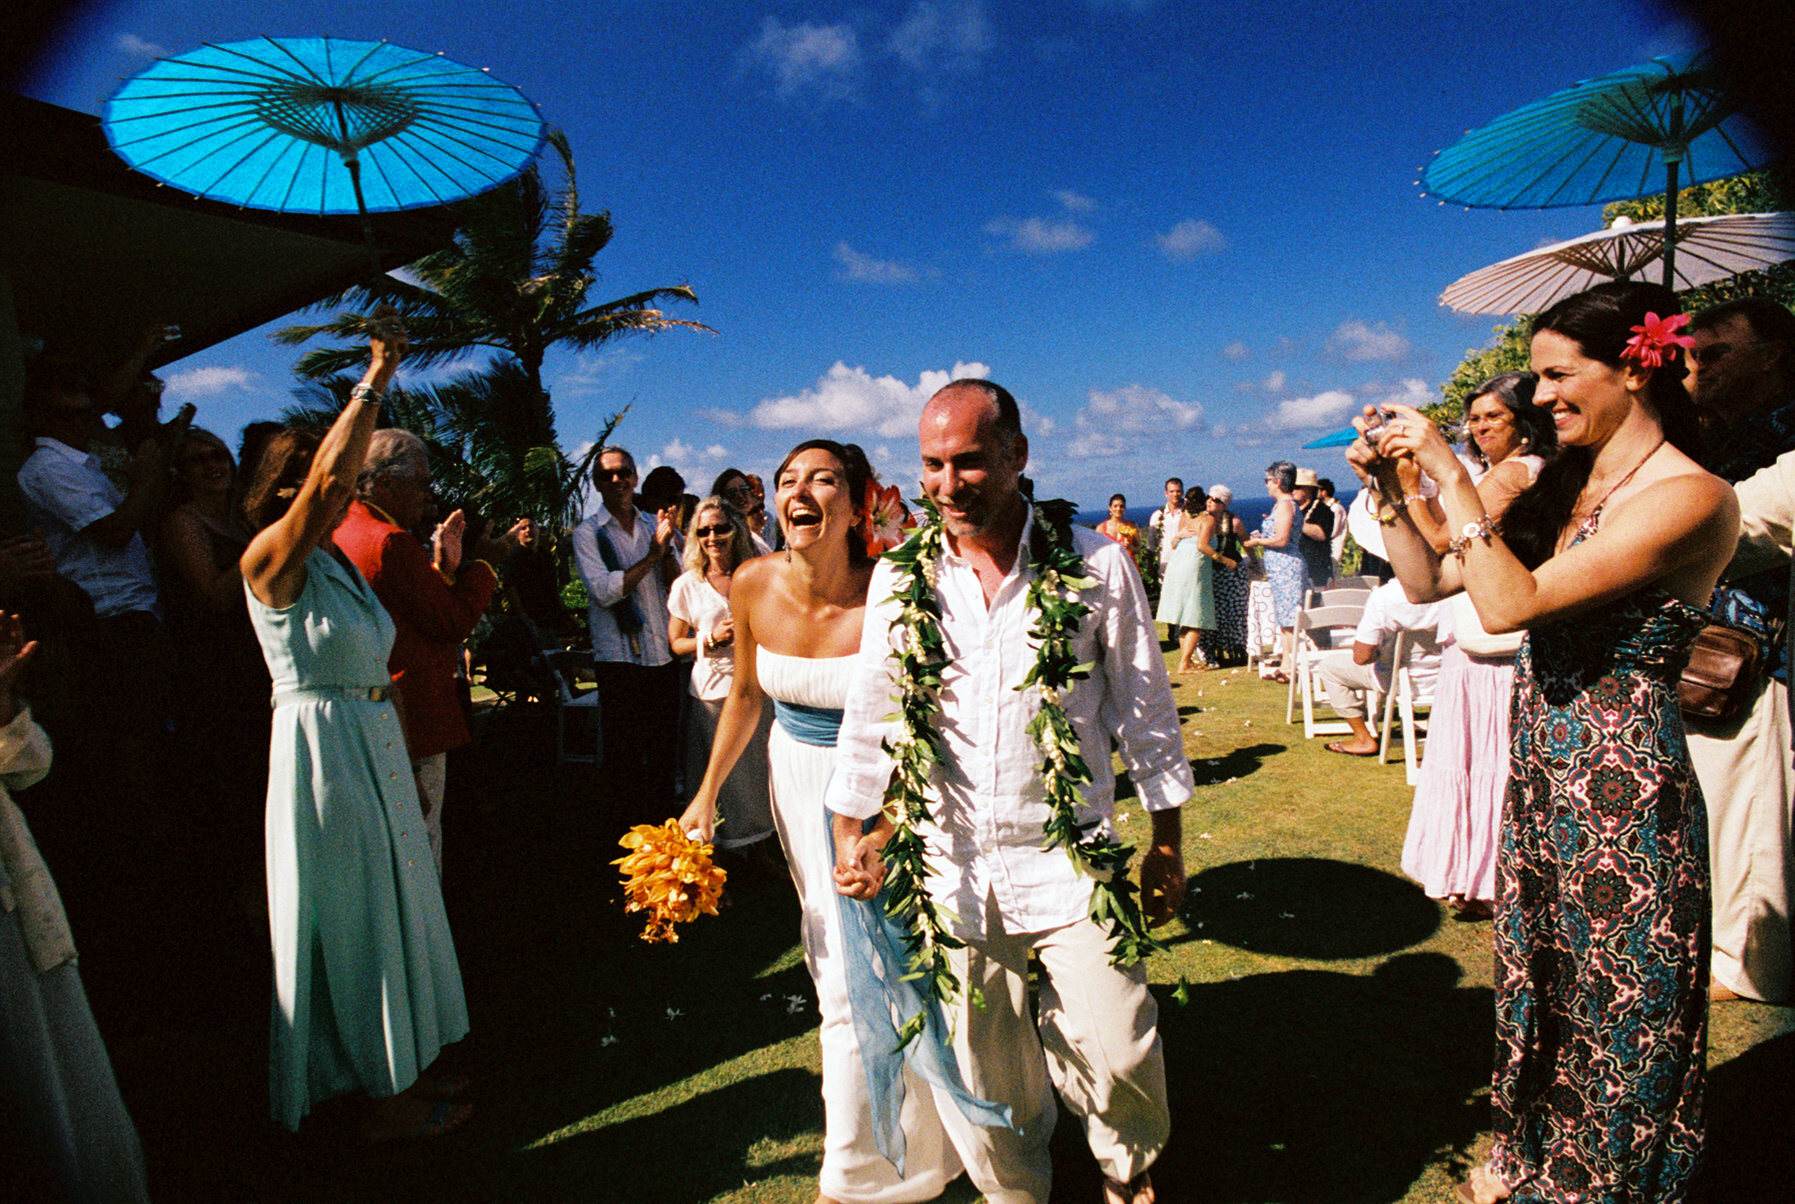 Ceremony, Flowers & Decor, Destinations, orange, blue, Destination Weddings, Hawaii, Beach, Beach Wedding Flowers & Decor, Wedding, Colorful, Destination wedding, Hawaiian wedding, Kuaui